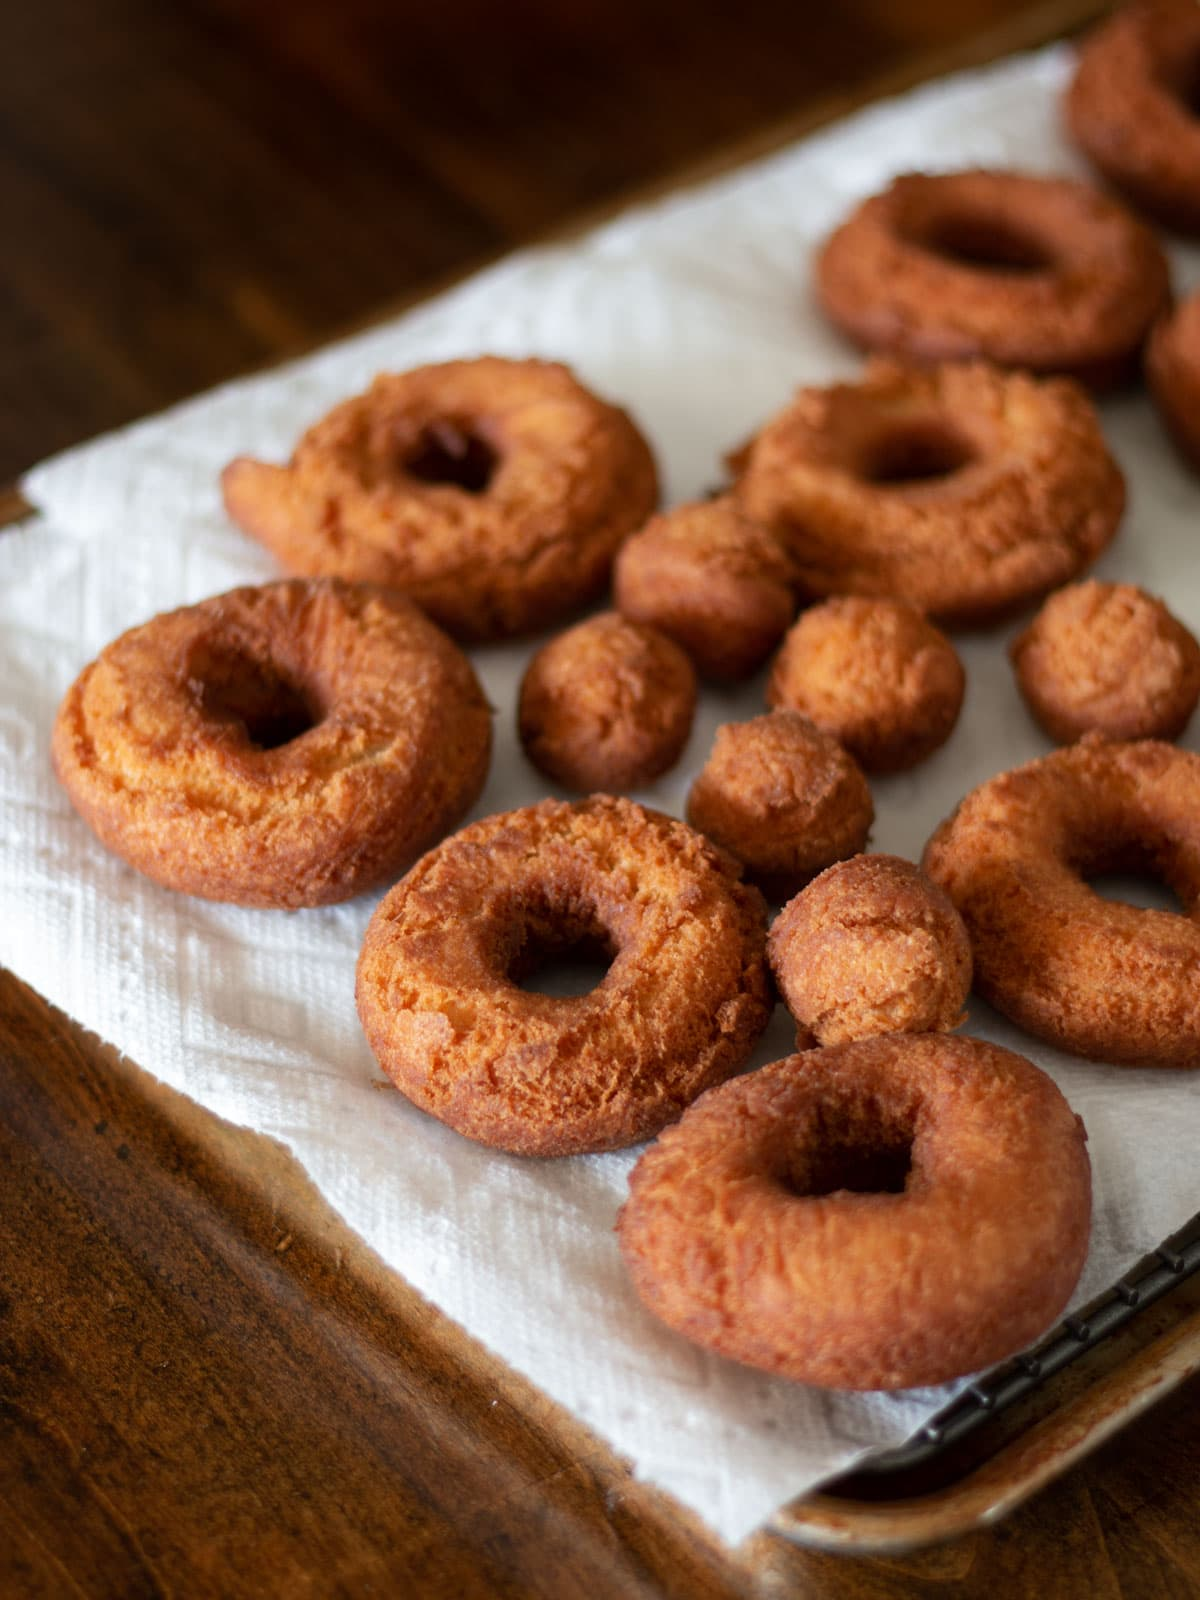 Homemade doughnuts cooling on paper towels